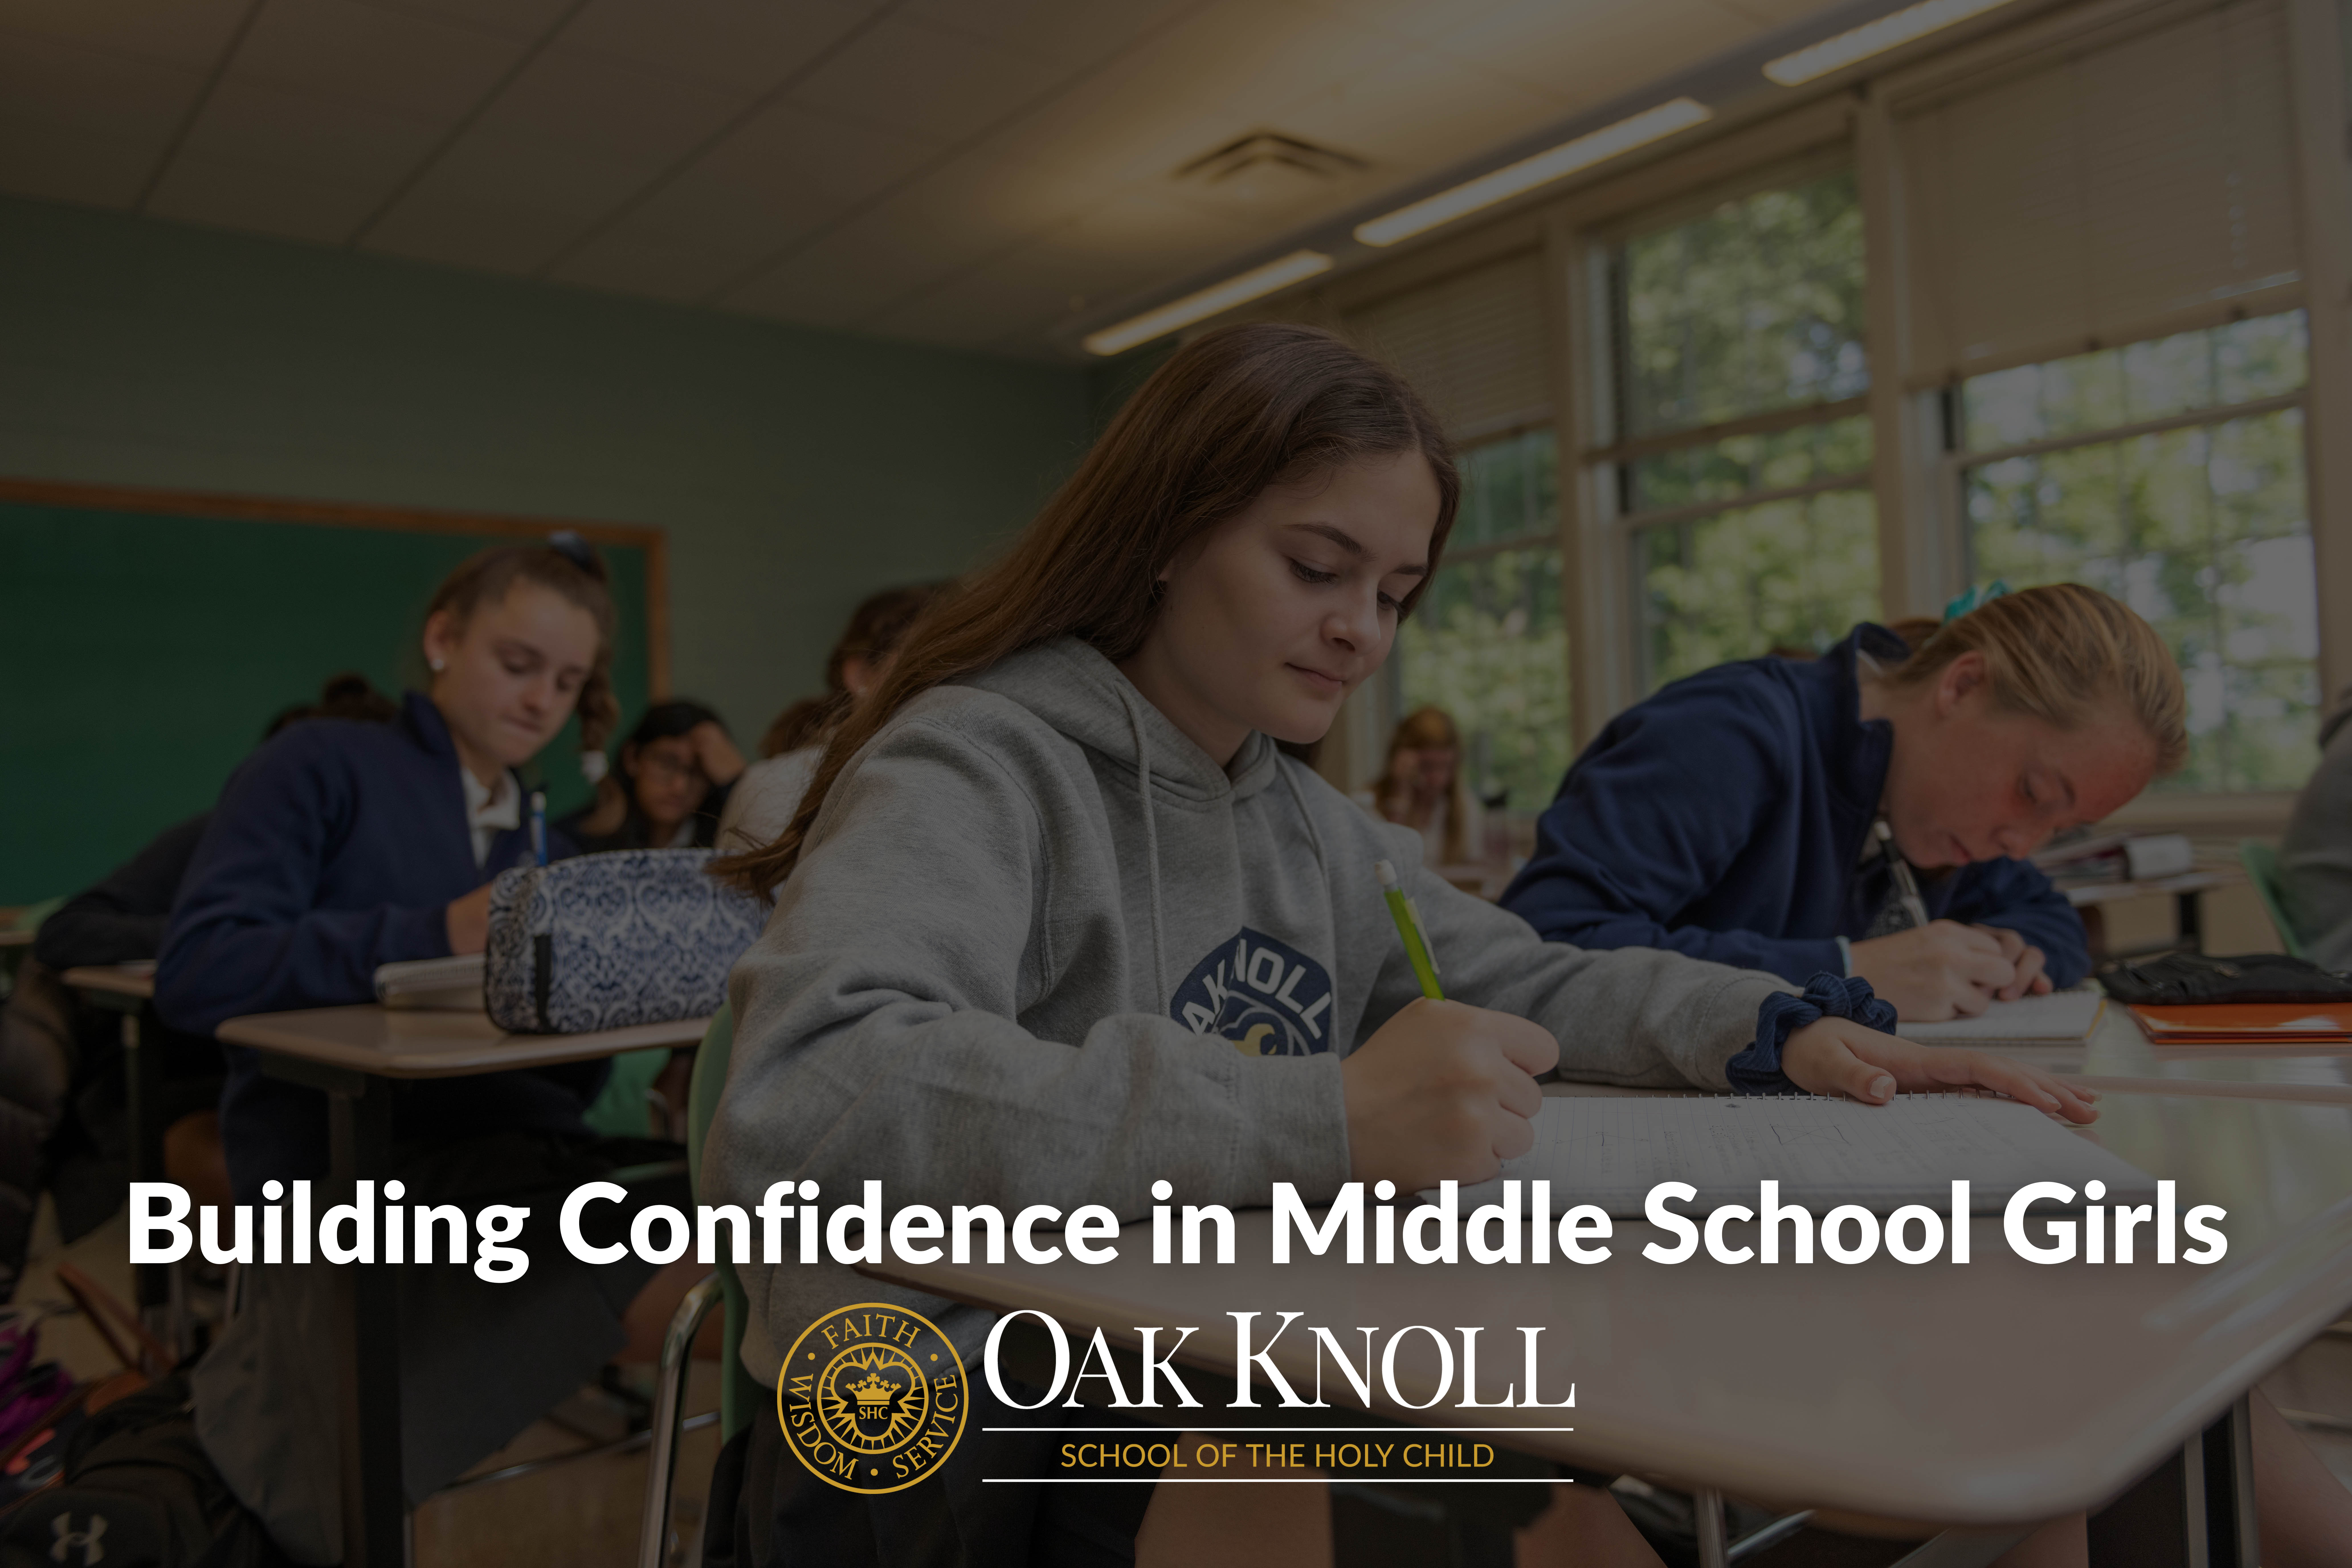 Building Confidence in Middle School Girls